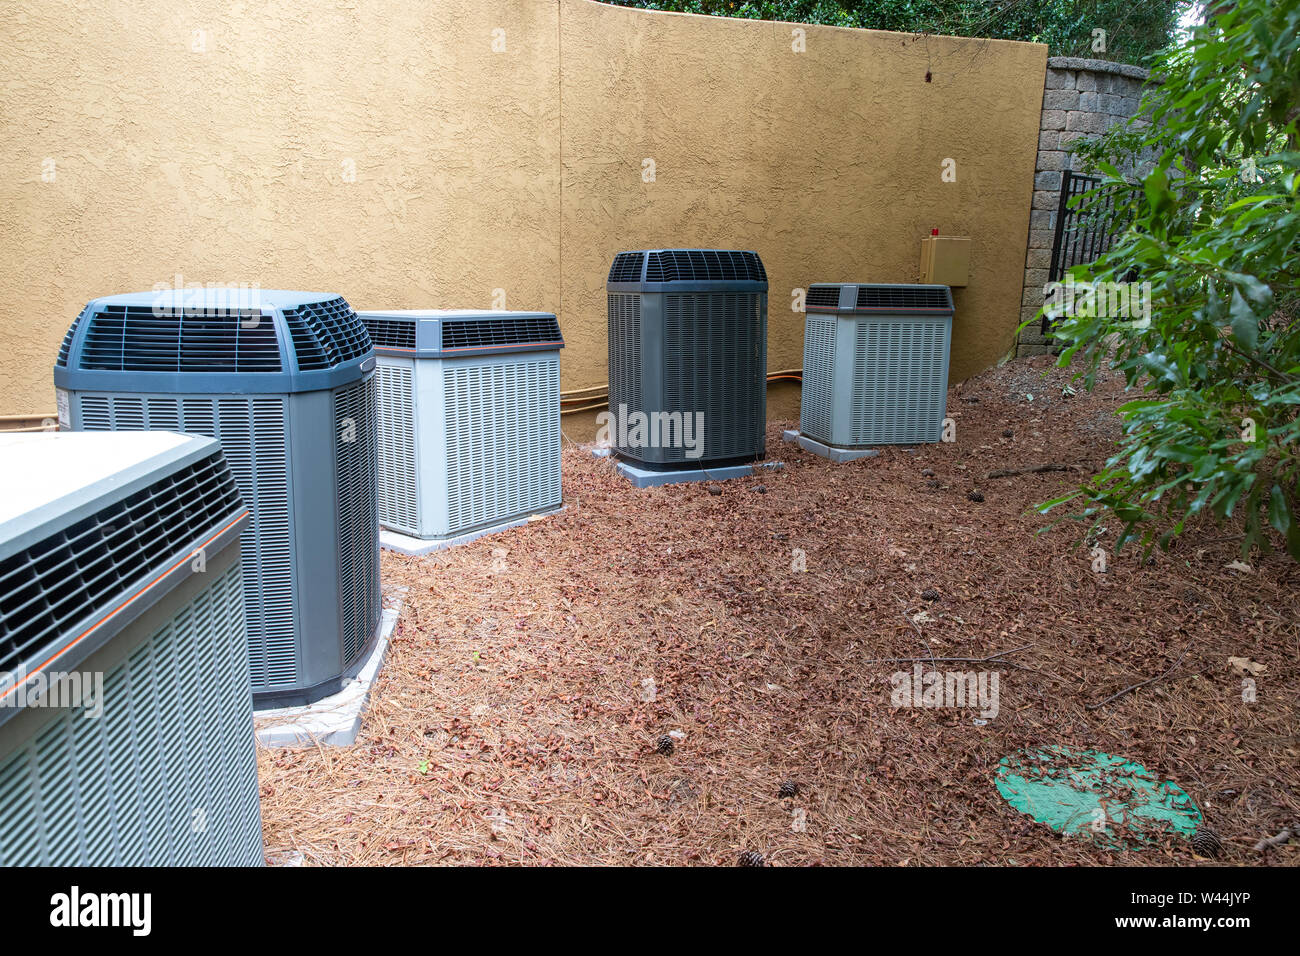 Multiple Air Conditioner Compressors next to large house or building, with room for copy space Stock Photo